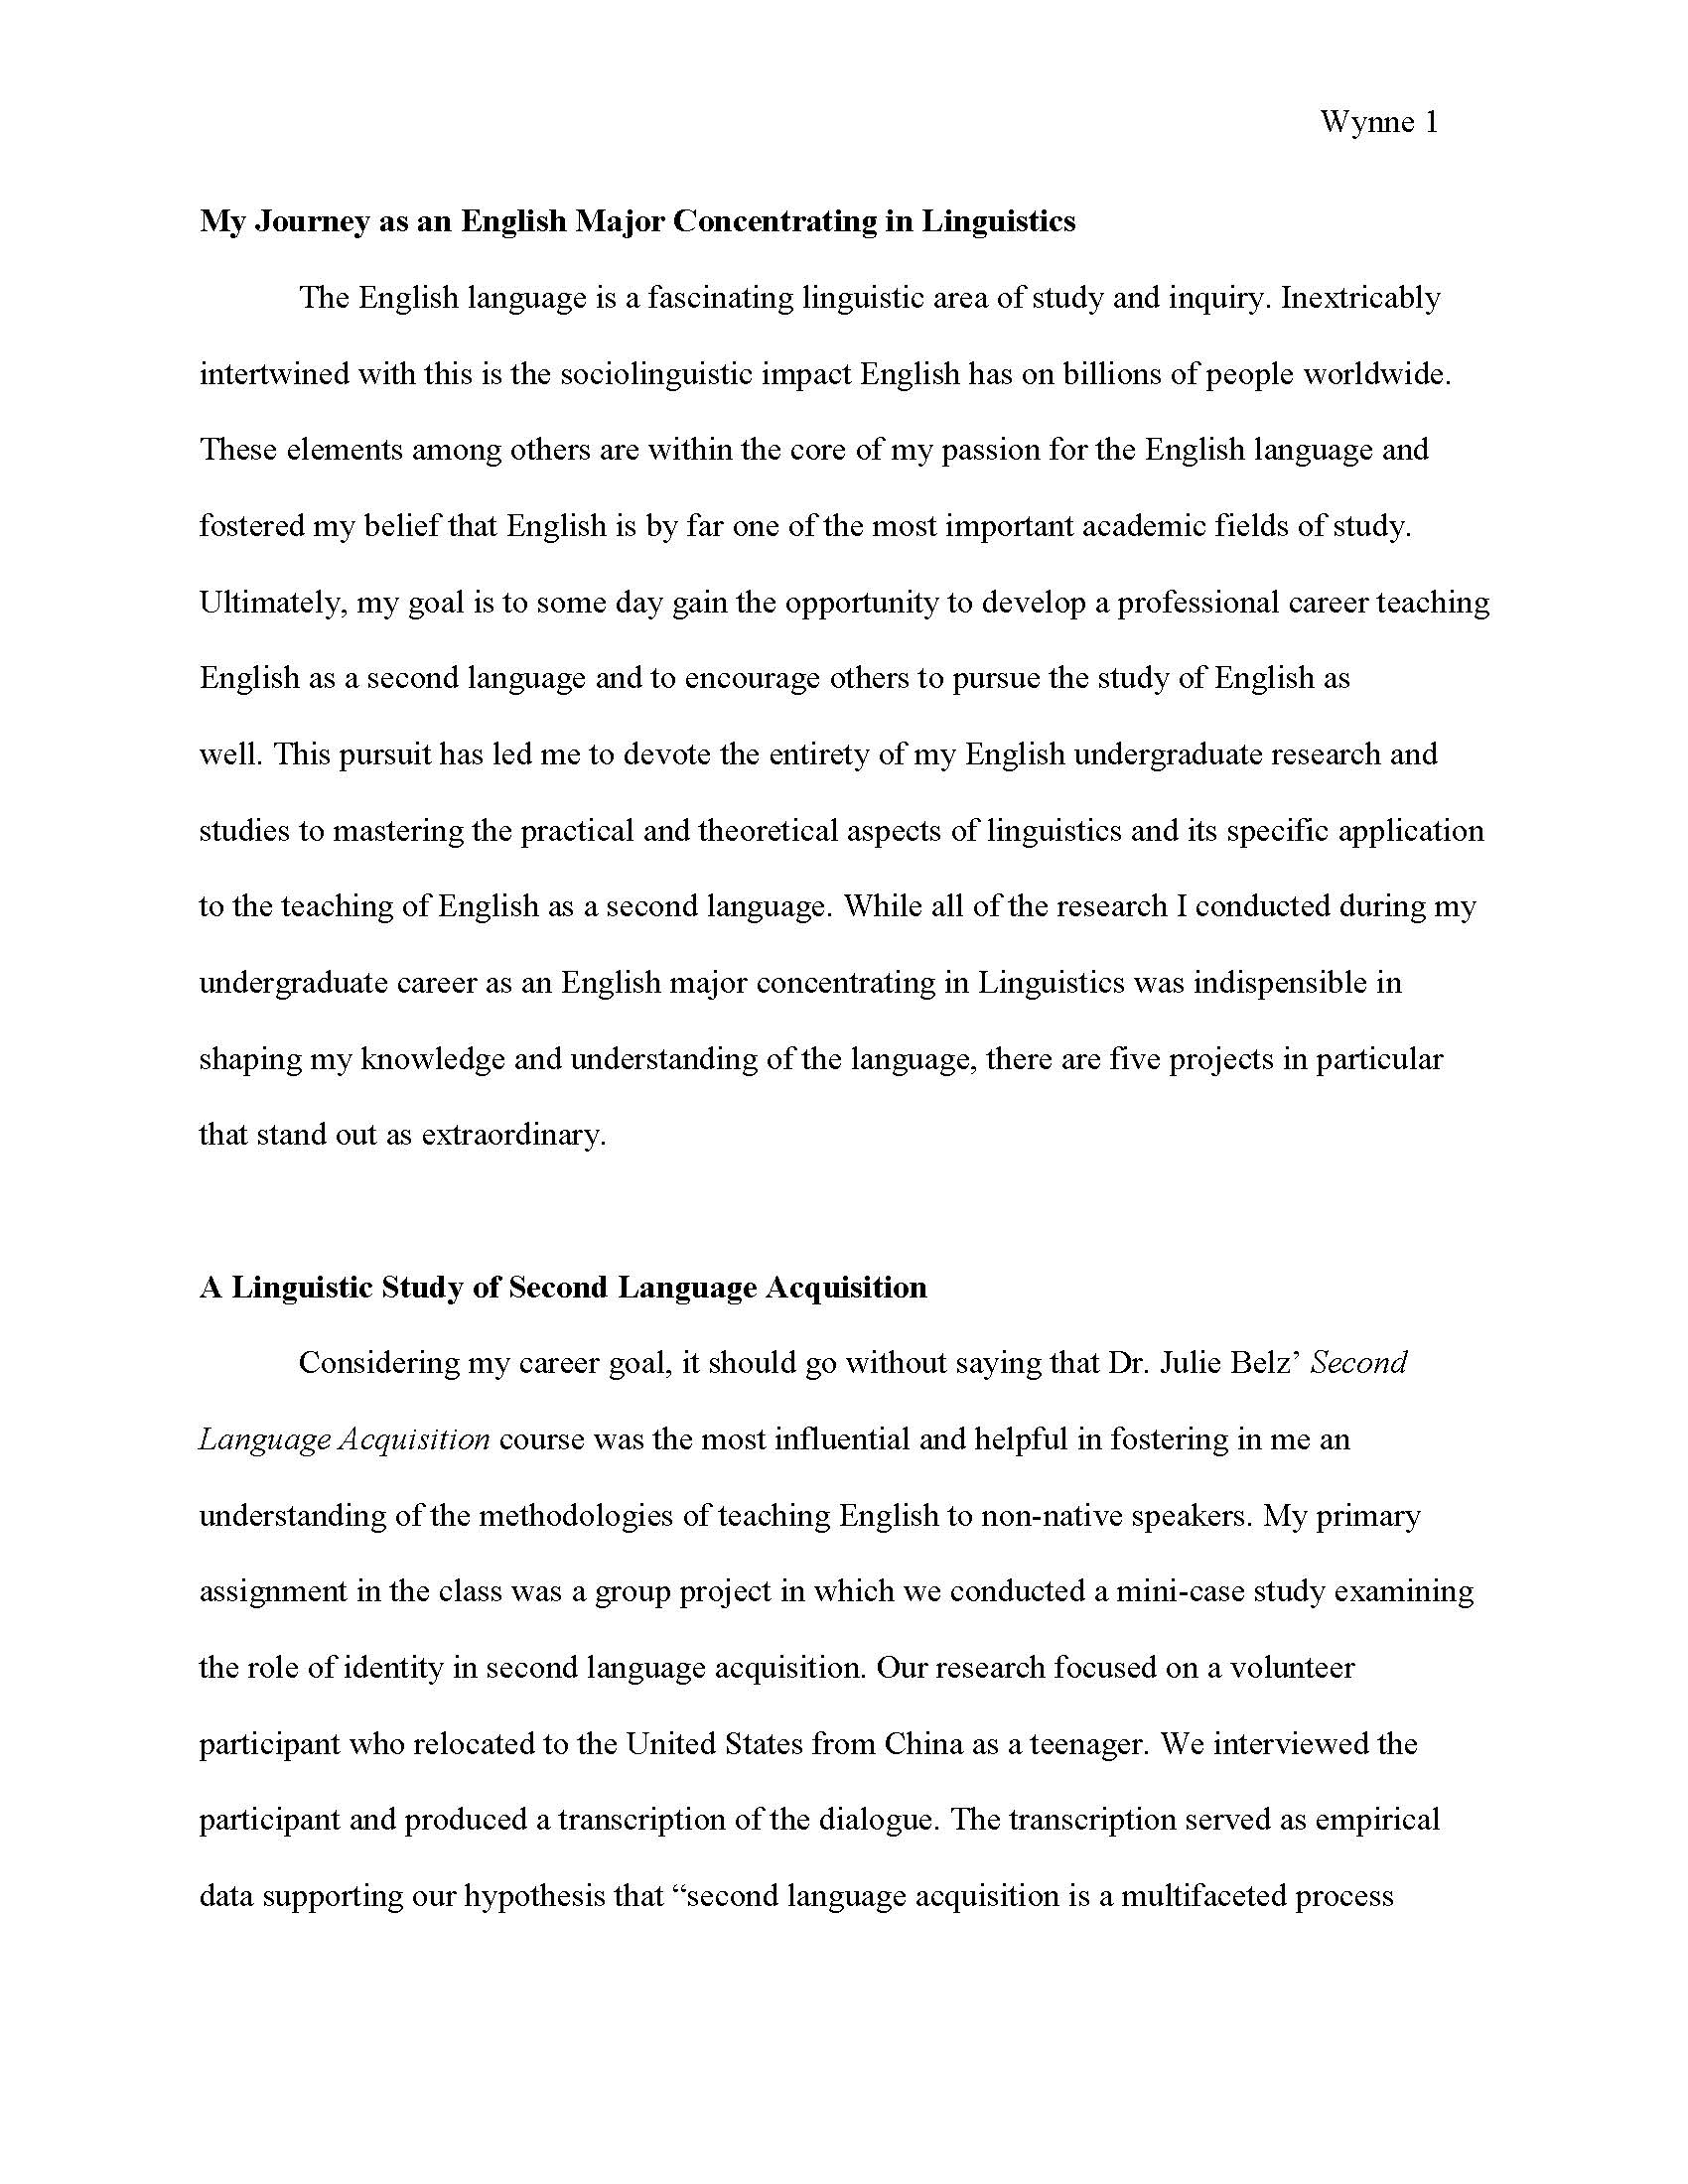 Cultural Analysis Essay  Outsider Essay also About My Family Essay English Is My Second Language Essay Ielts Simoncom Ielts  Essay Communication